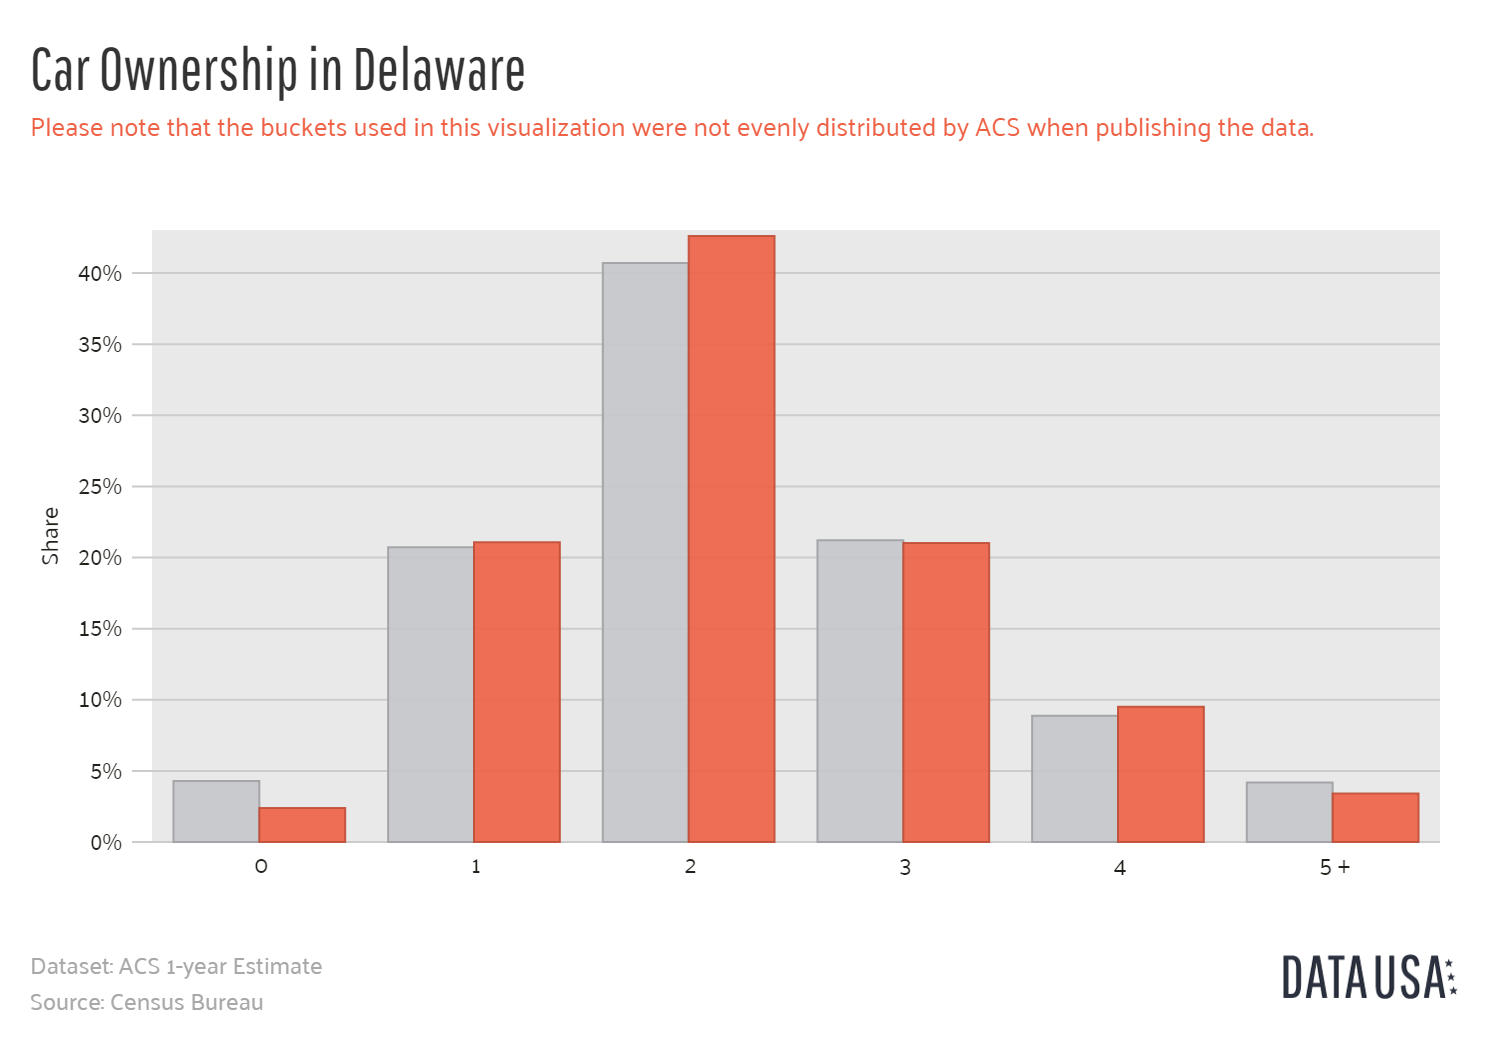 Data-USA-Bar-Chart-of-Car-Ownership-in-Delaware